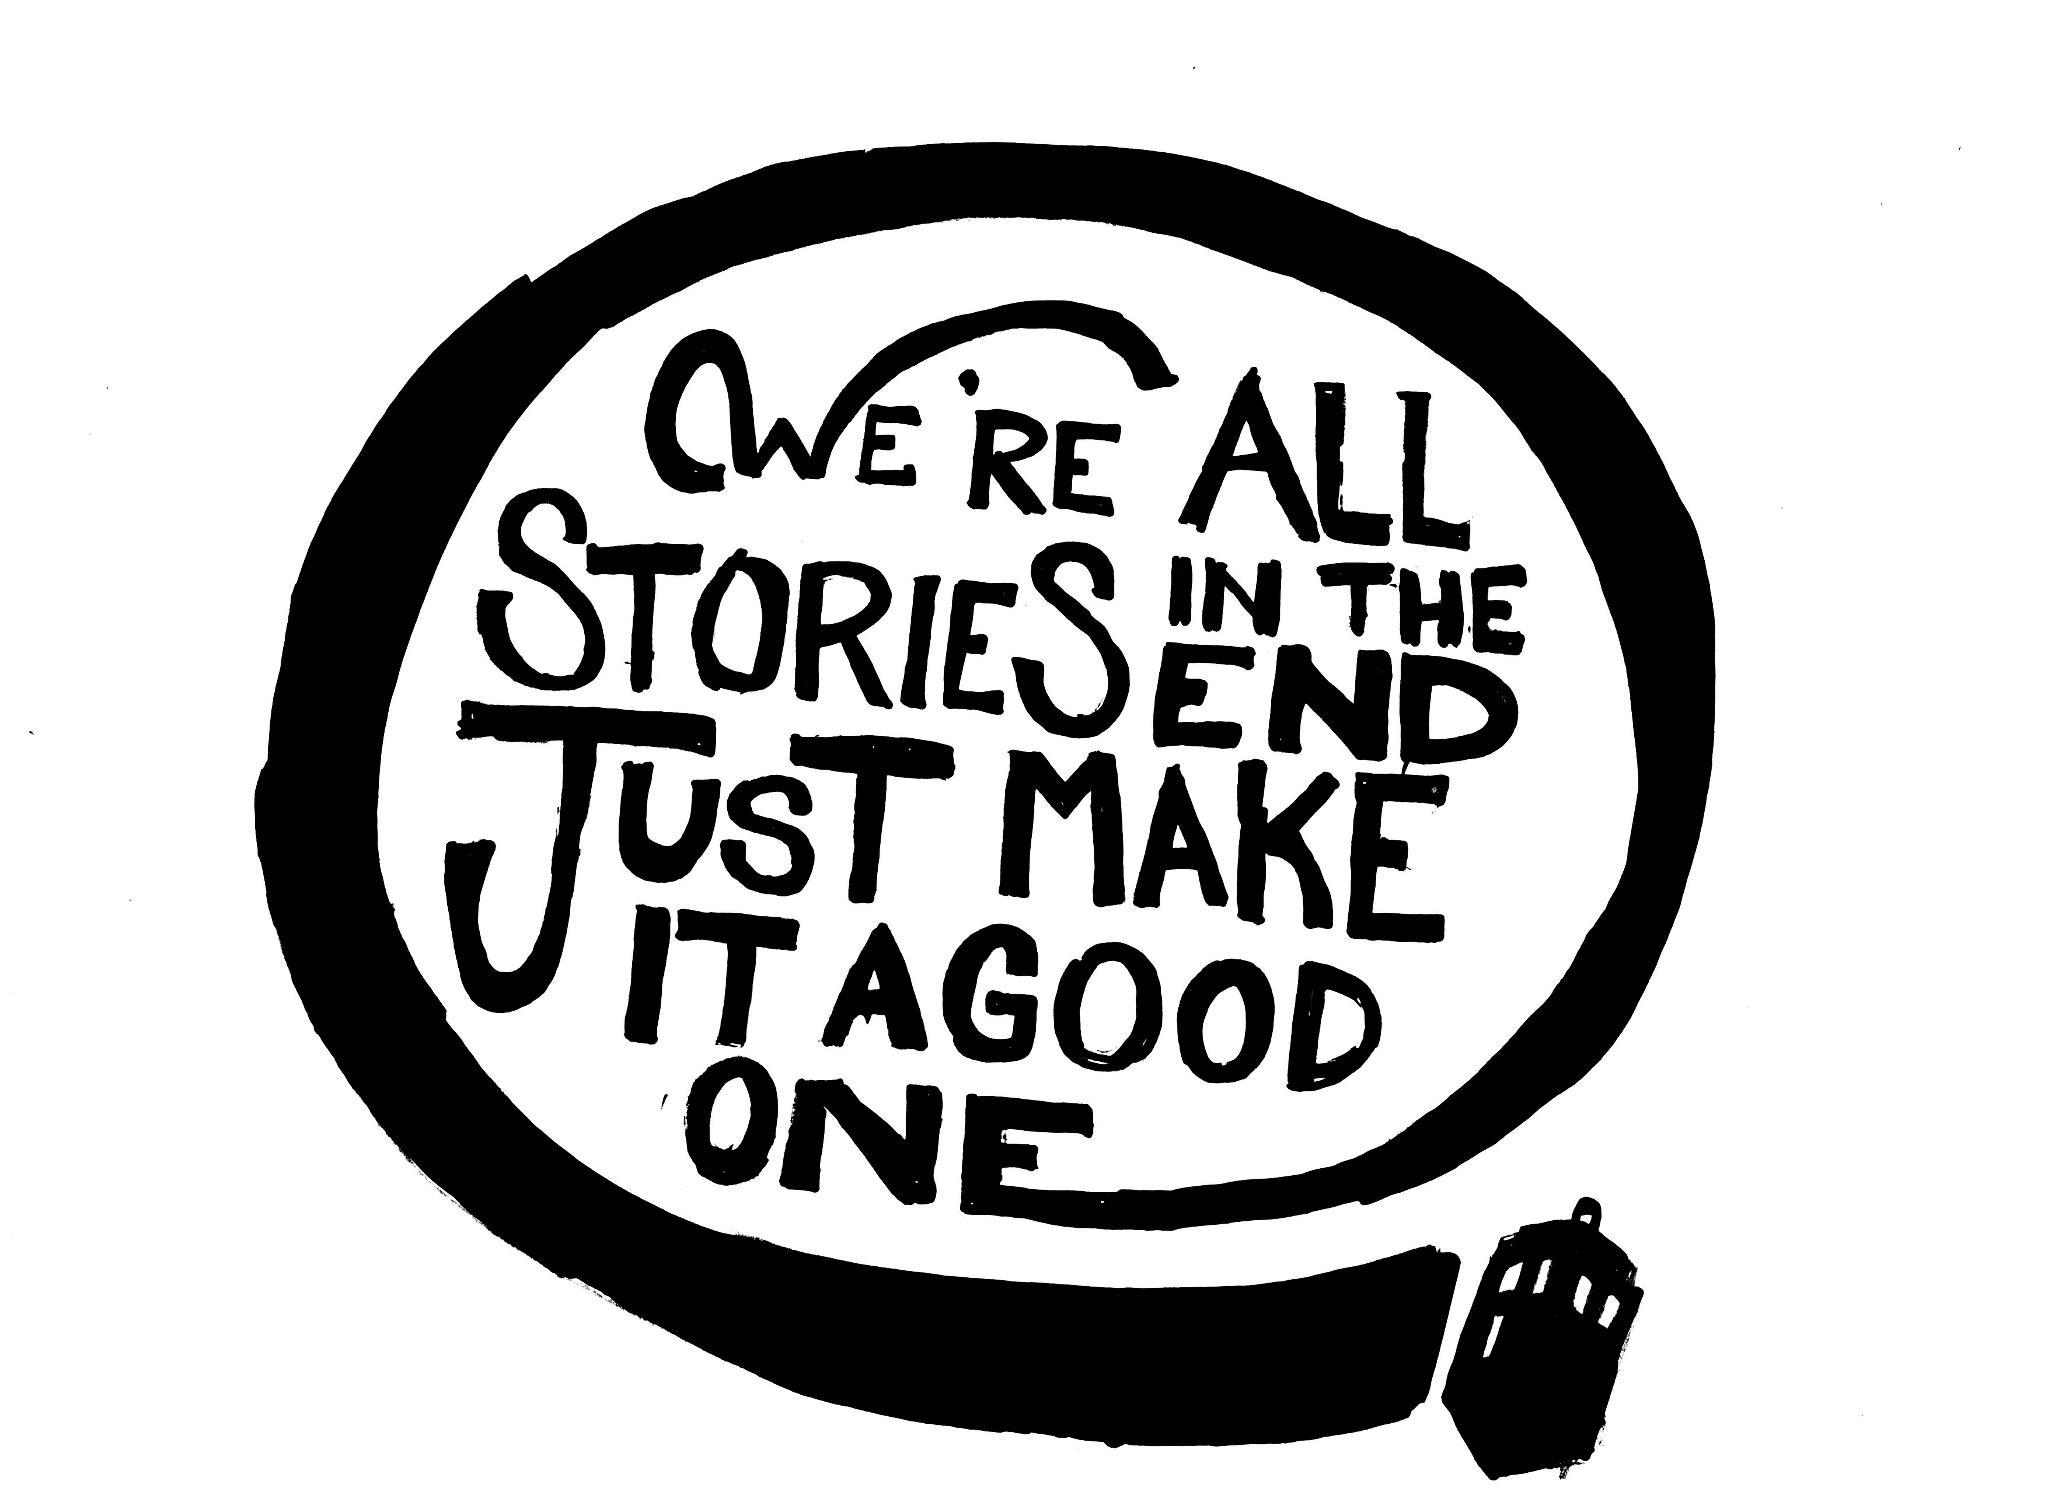 We're all stories in the end. Make it a good one eh? - image 6 - student project